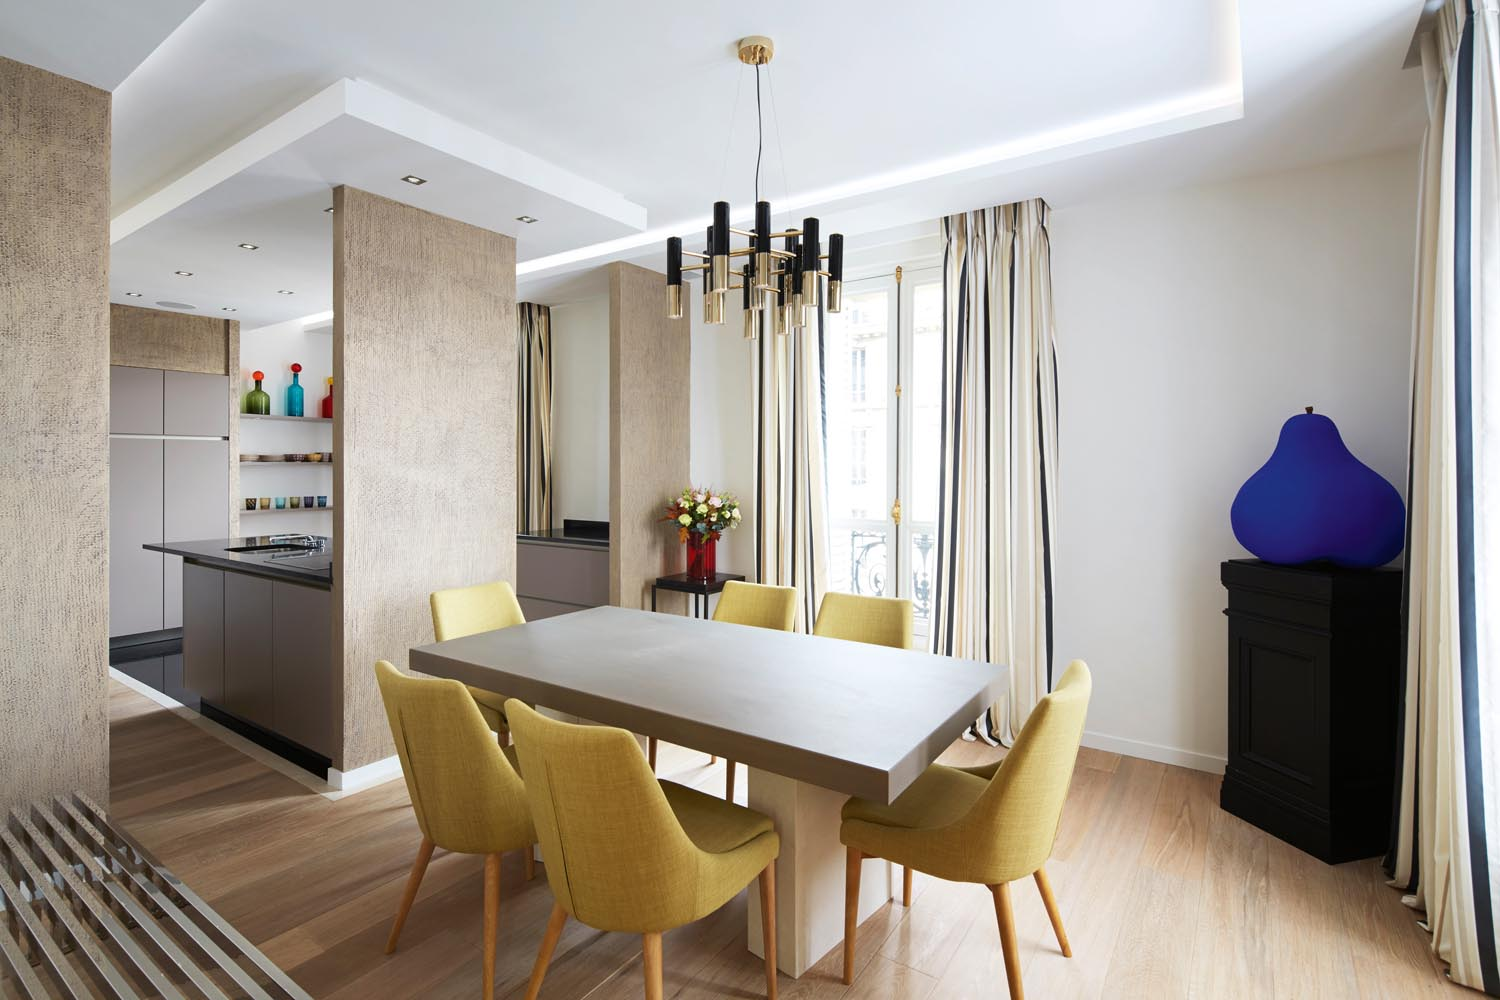 Straw-coloured chairs bring a natural element to the dining room